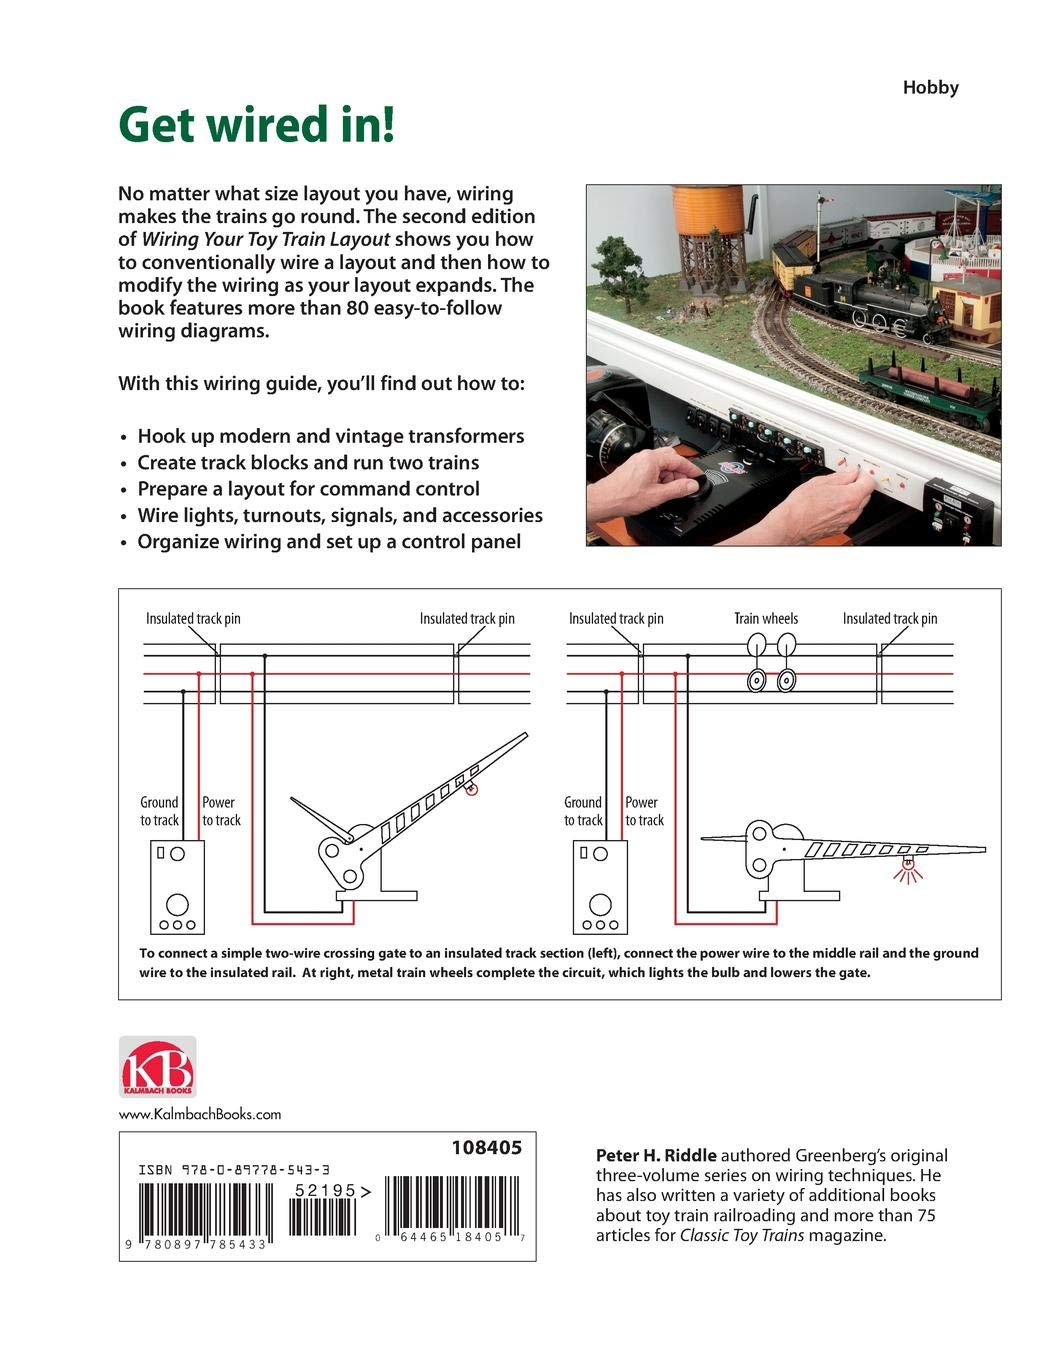 Wiring Your Toy Train Layout Peter H Riddle 9780897785433 Amazon Mth Trains Diagrams Books